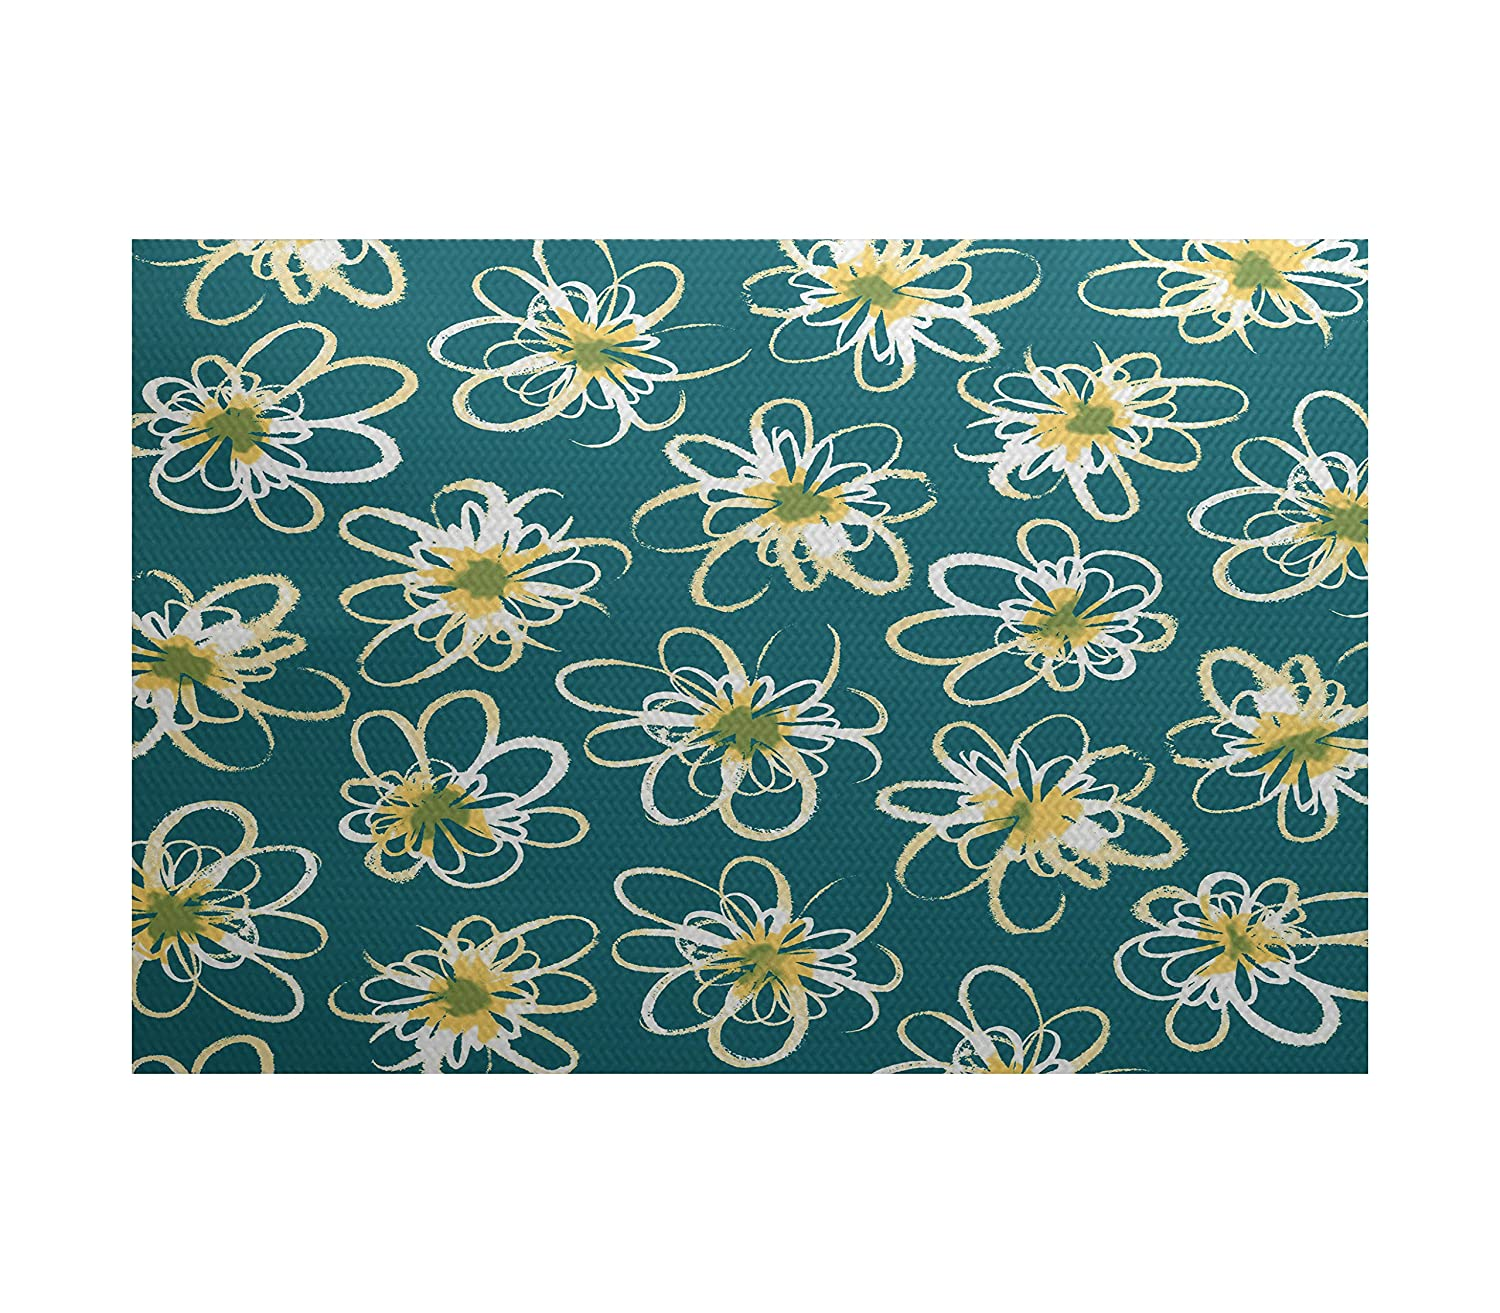 E by design RGN507BL37YE1-23 Penelope Floral, Geometric Print Indoor/Outdoor Rug, 2 x 3, Blue/Teal